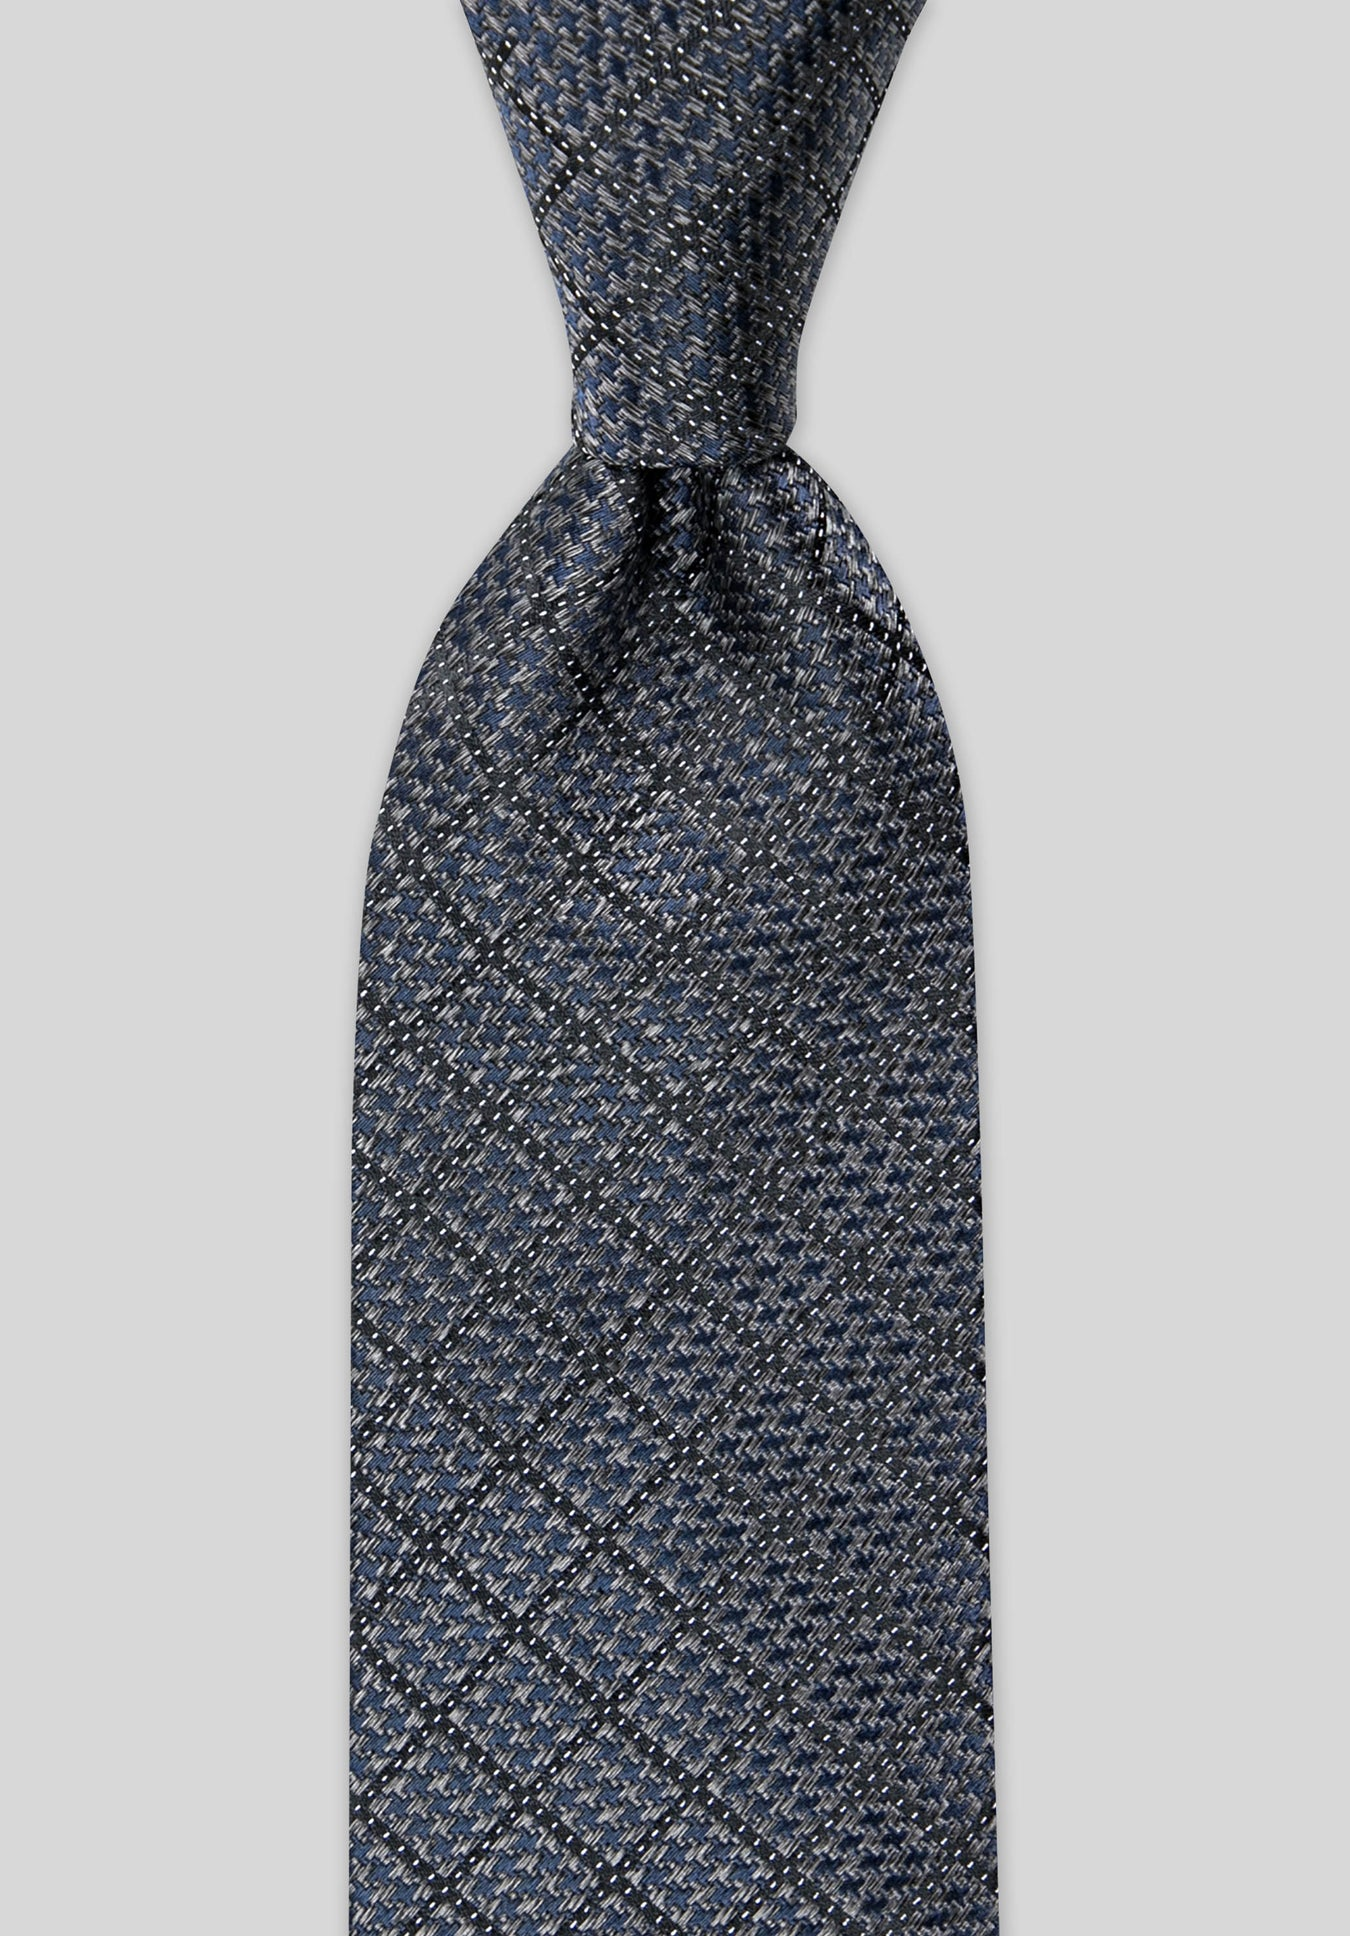 HOUNDSTOOTH 7.5CM SILK TIE - Charcoal